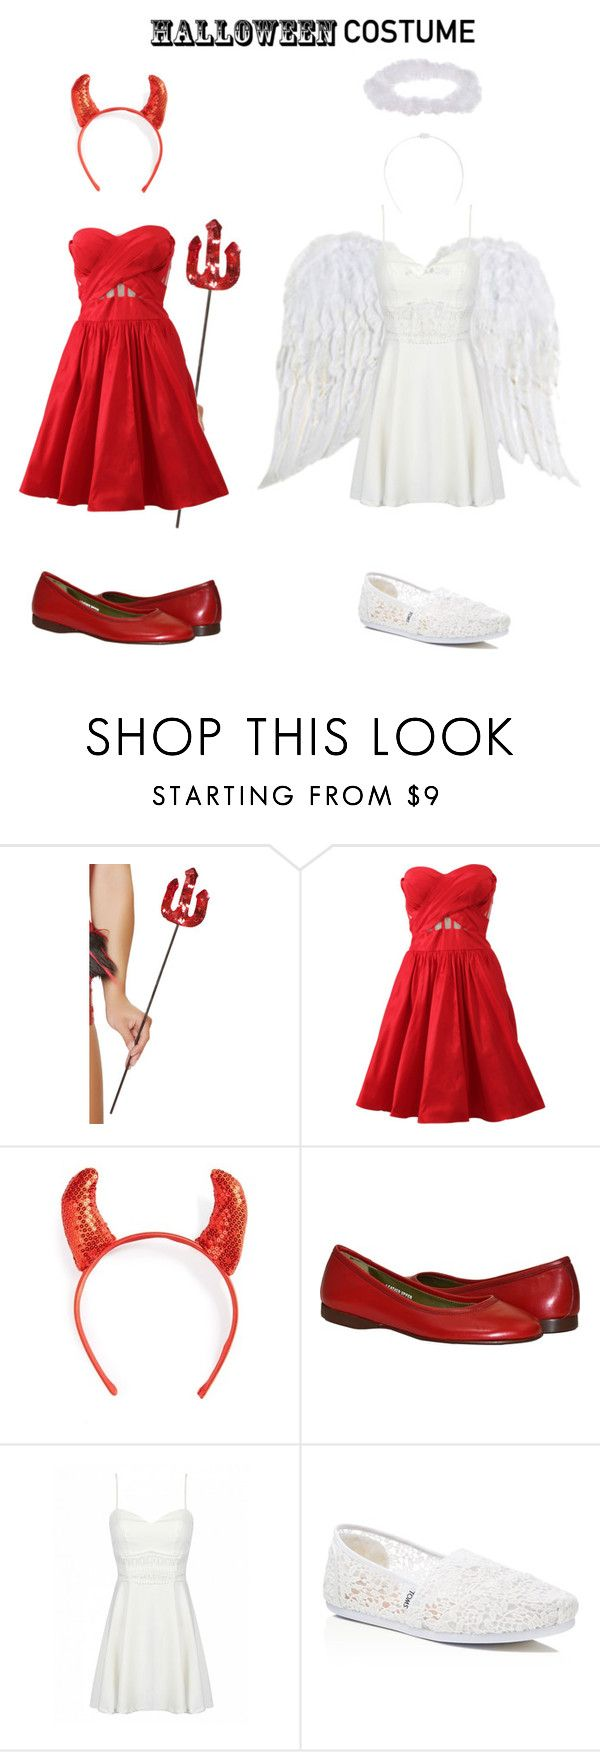 """""""Best friends costume (Angel and Devil)"""" by casscop318 ❤ liked on Polyvore featuring Notte by Marchesa, Topshop, TOMS, halloweencostume and DIYHalloween"""